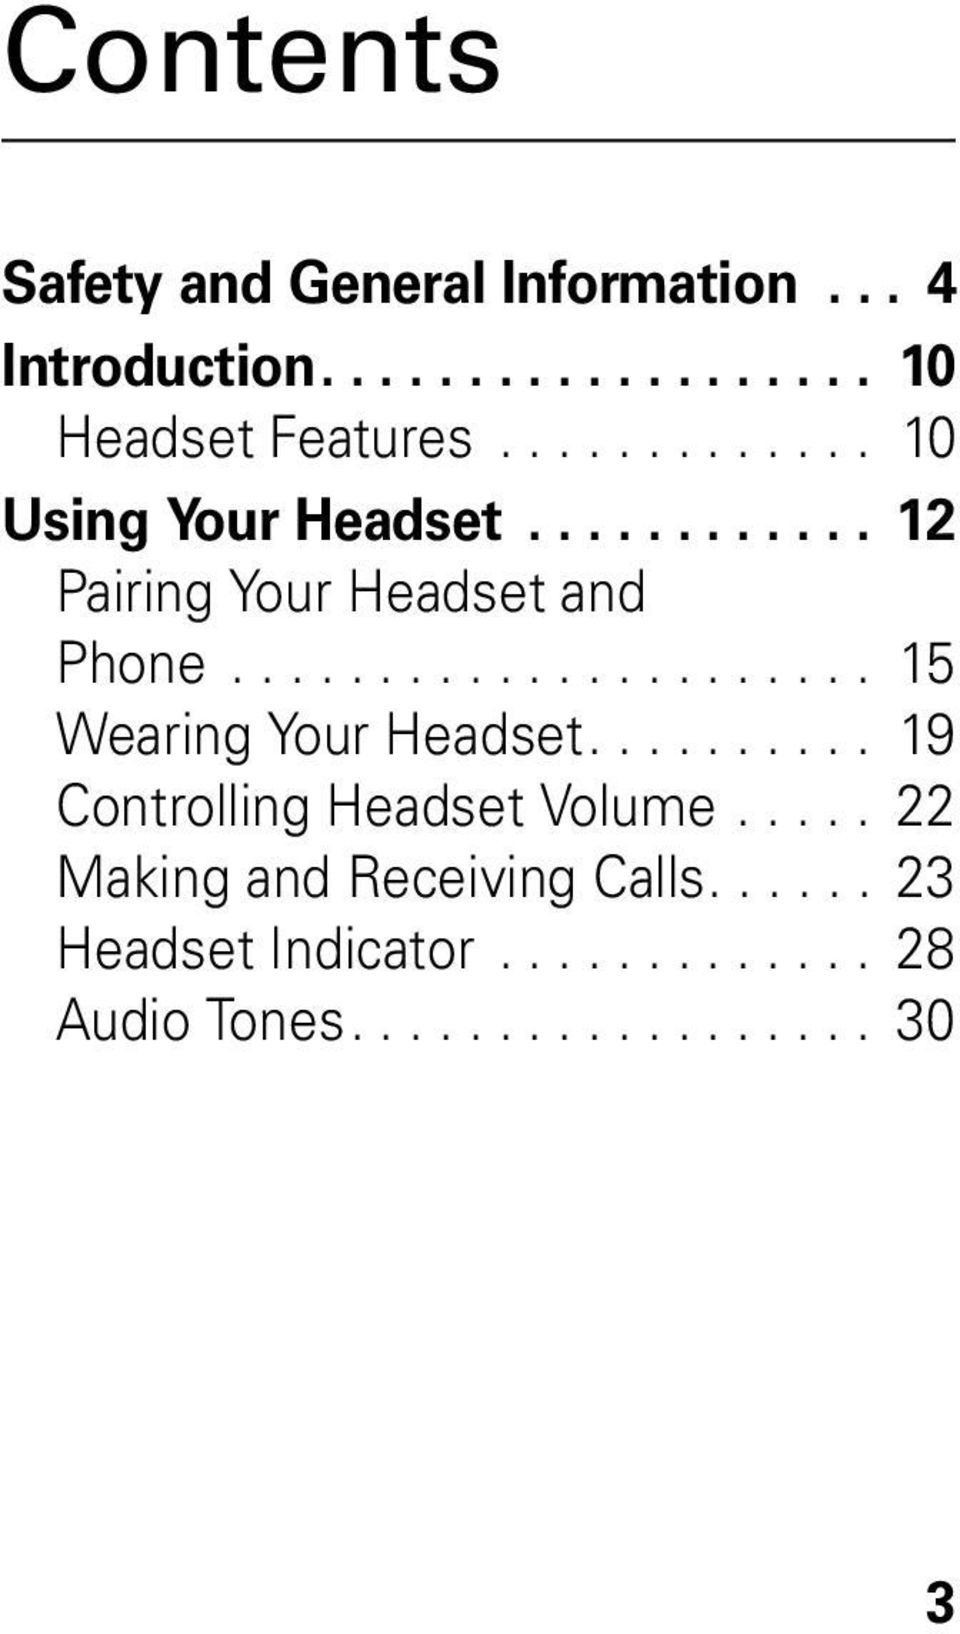 ..................... 15 Wearing Your Headset.......... 19 Controlling Headset Volume.